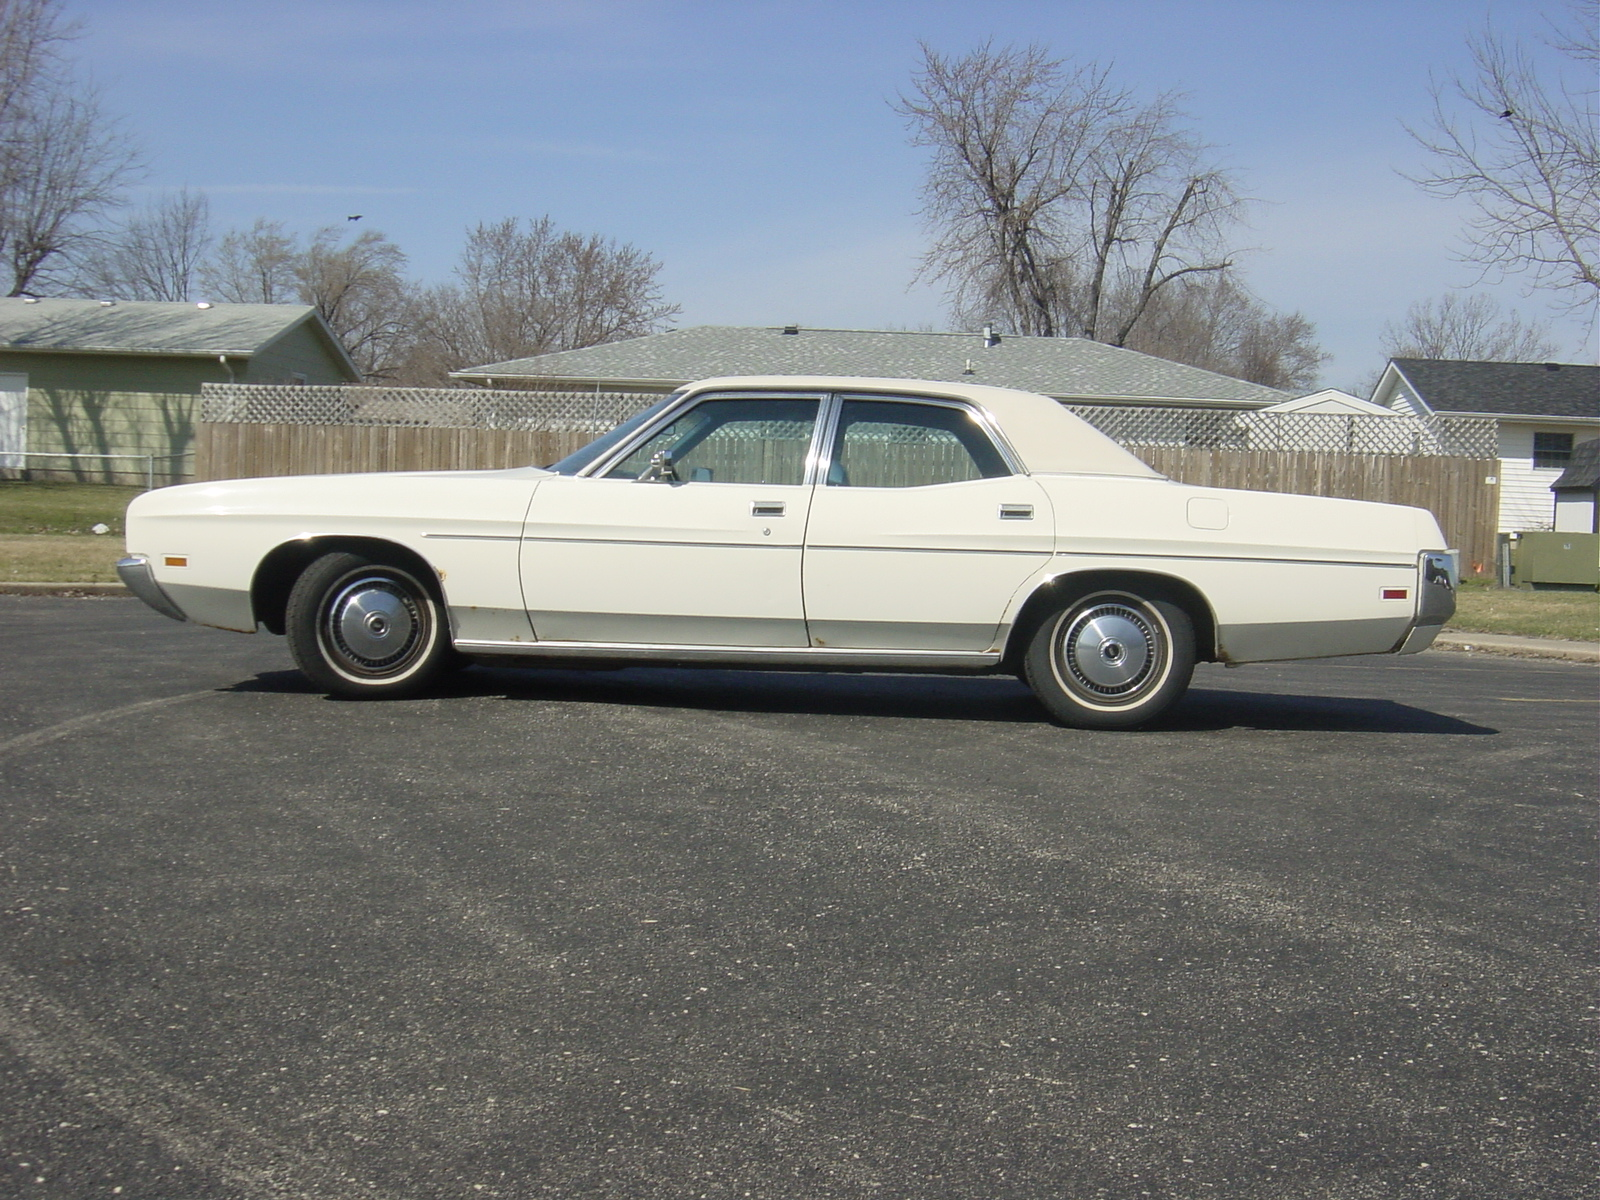 1972 Ford Galaxie picture, exterior